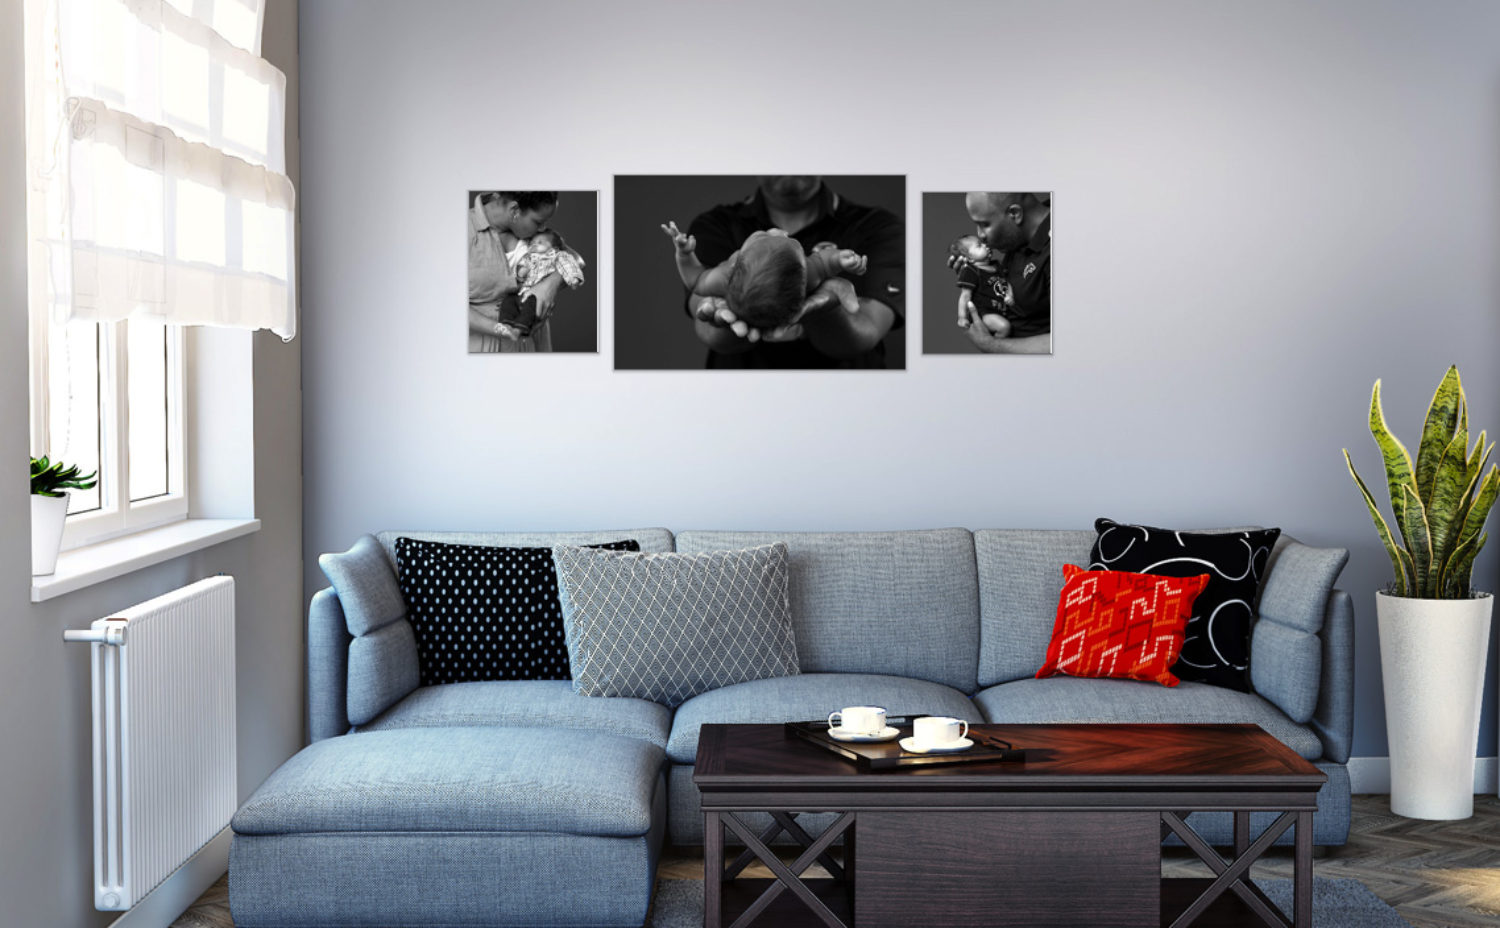 https://oscarspearmanphotography.com/wp-content/uploads/2017/11/living-room-wallart-newborn-1500x928.jpg